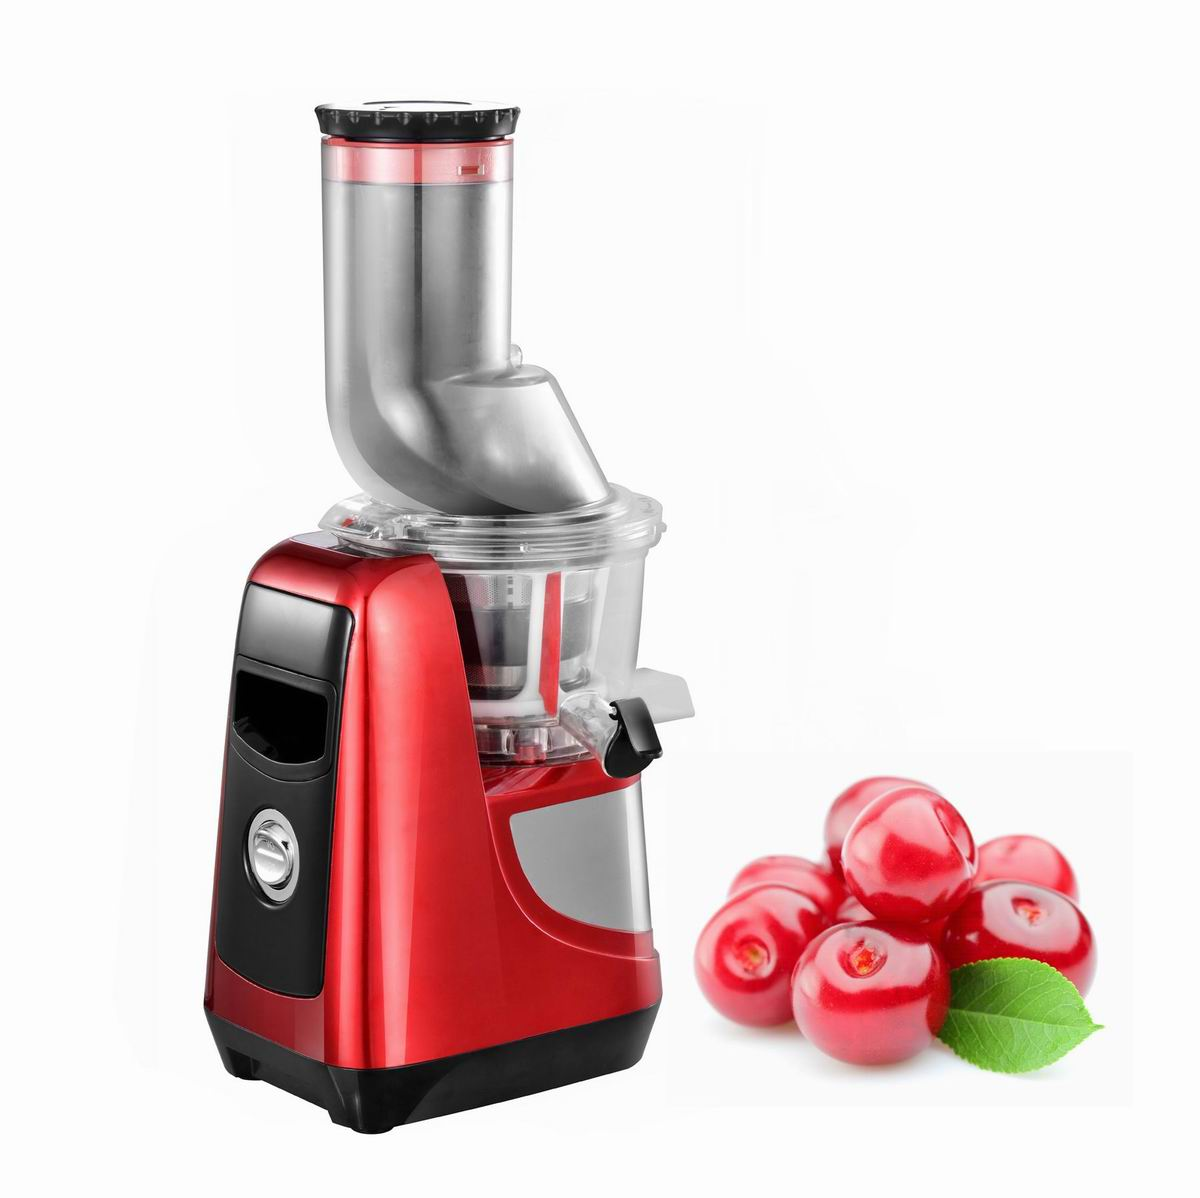 2015 New big mouth slow masticating juicer purchasing, souring agent ECvv.com purchasing ...